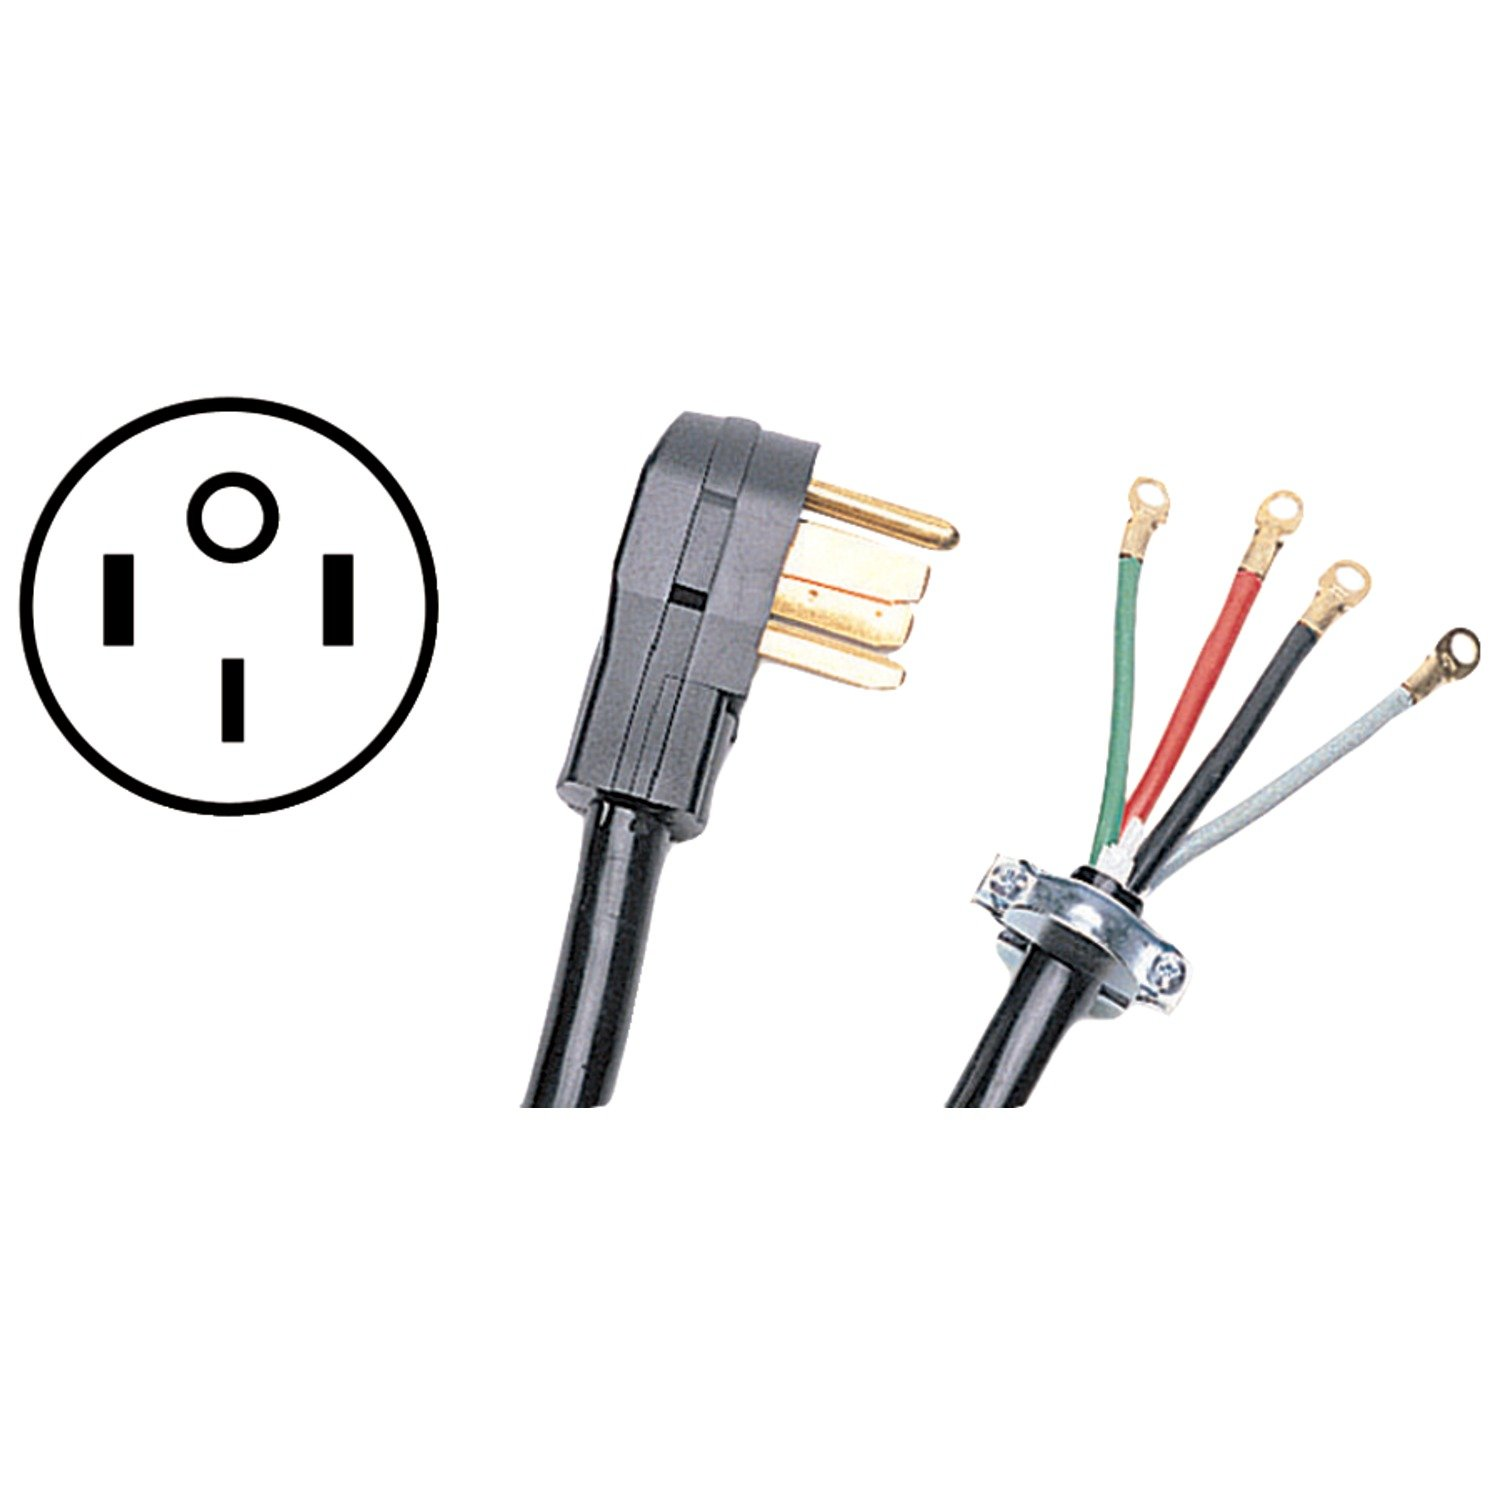 Amazon.com: Certified Appliance 90-2088 50 A 10-Foot 4-Wire Range Cord:  Home Improvement